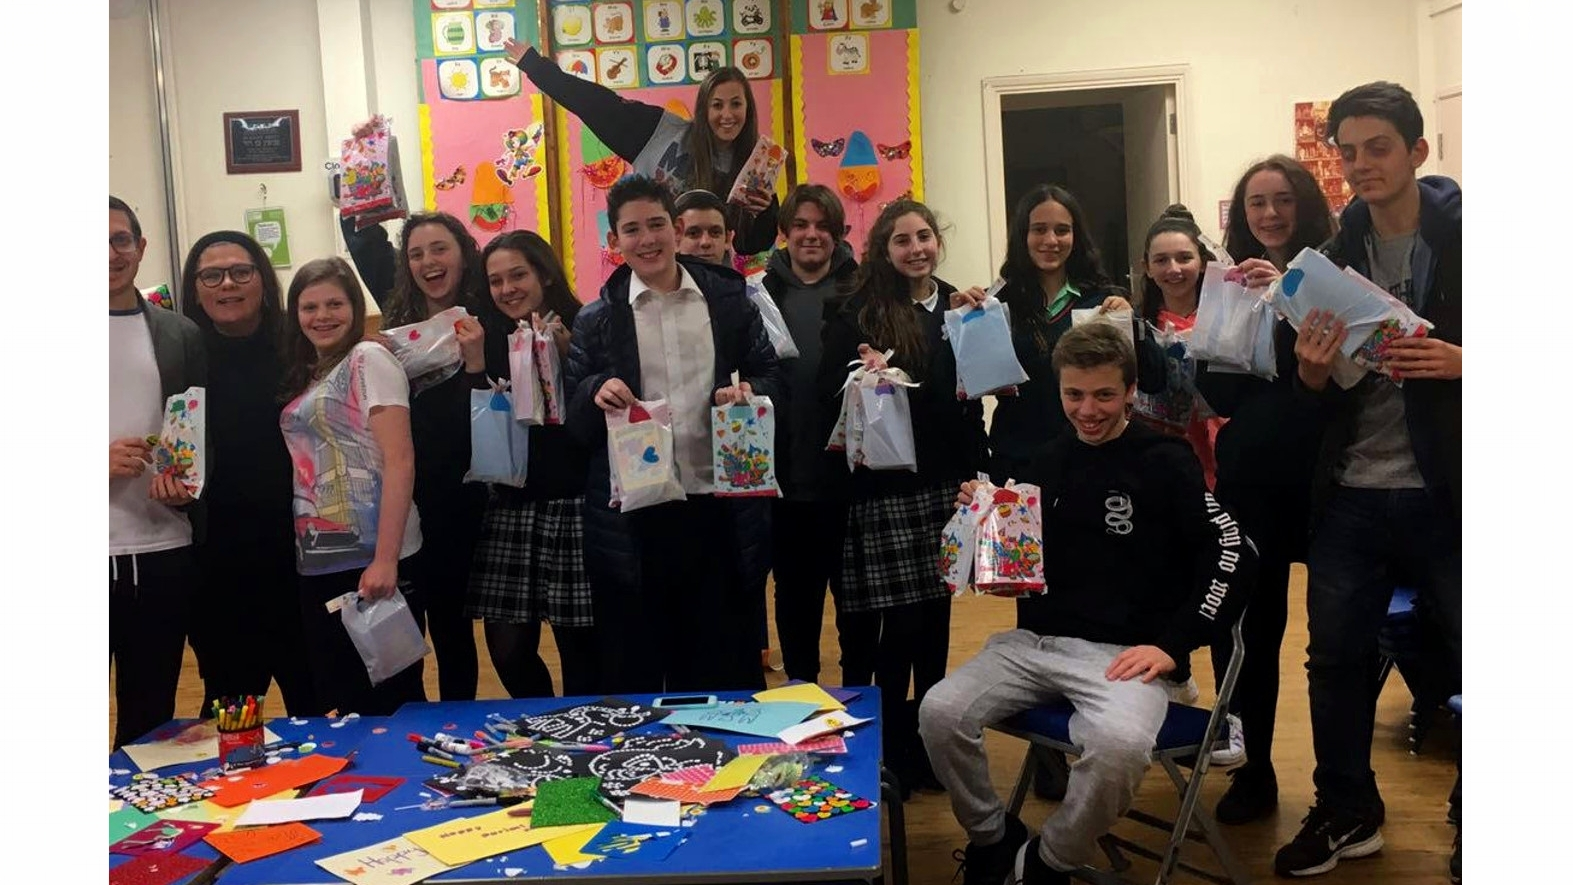 Making gifts for sick children with Camp Simcha